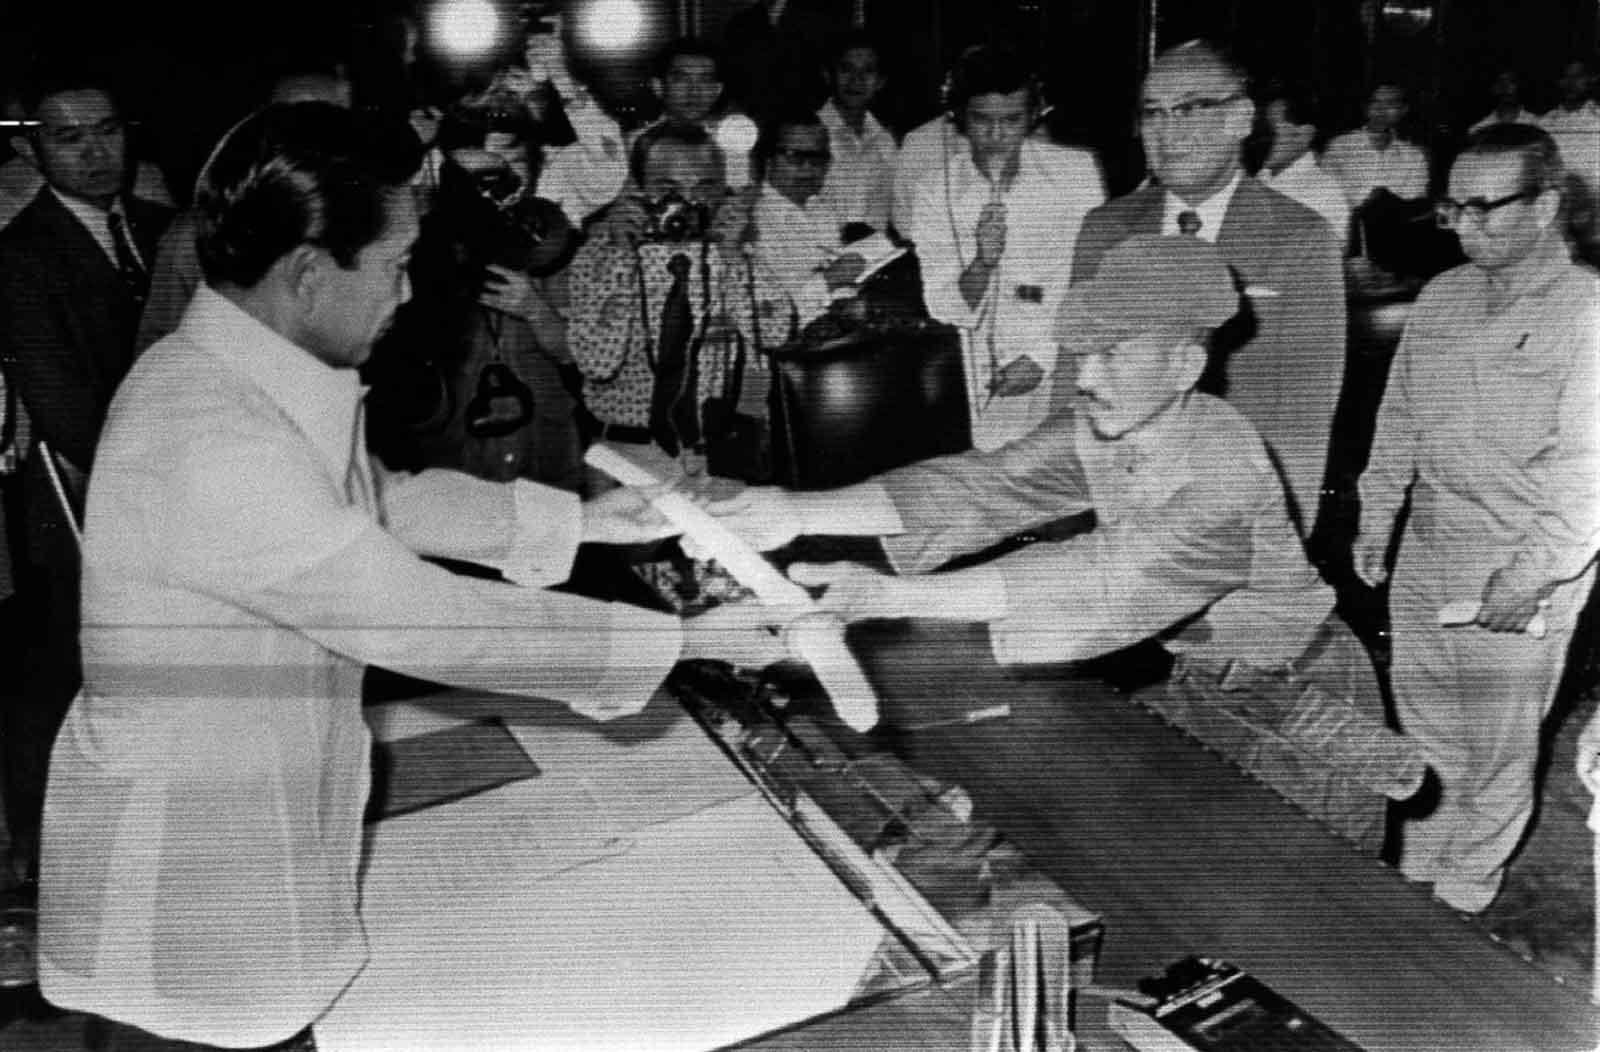 Onoda surrendering his sword to Philippine President Ferdinand Marcos, and received a pardon for his actions over the previous decades (he and his companions had killed some 30 people in their long war).